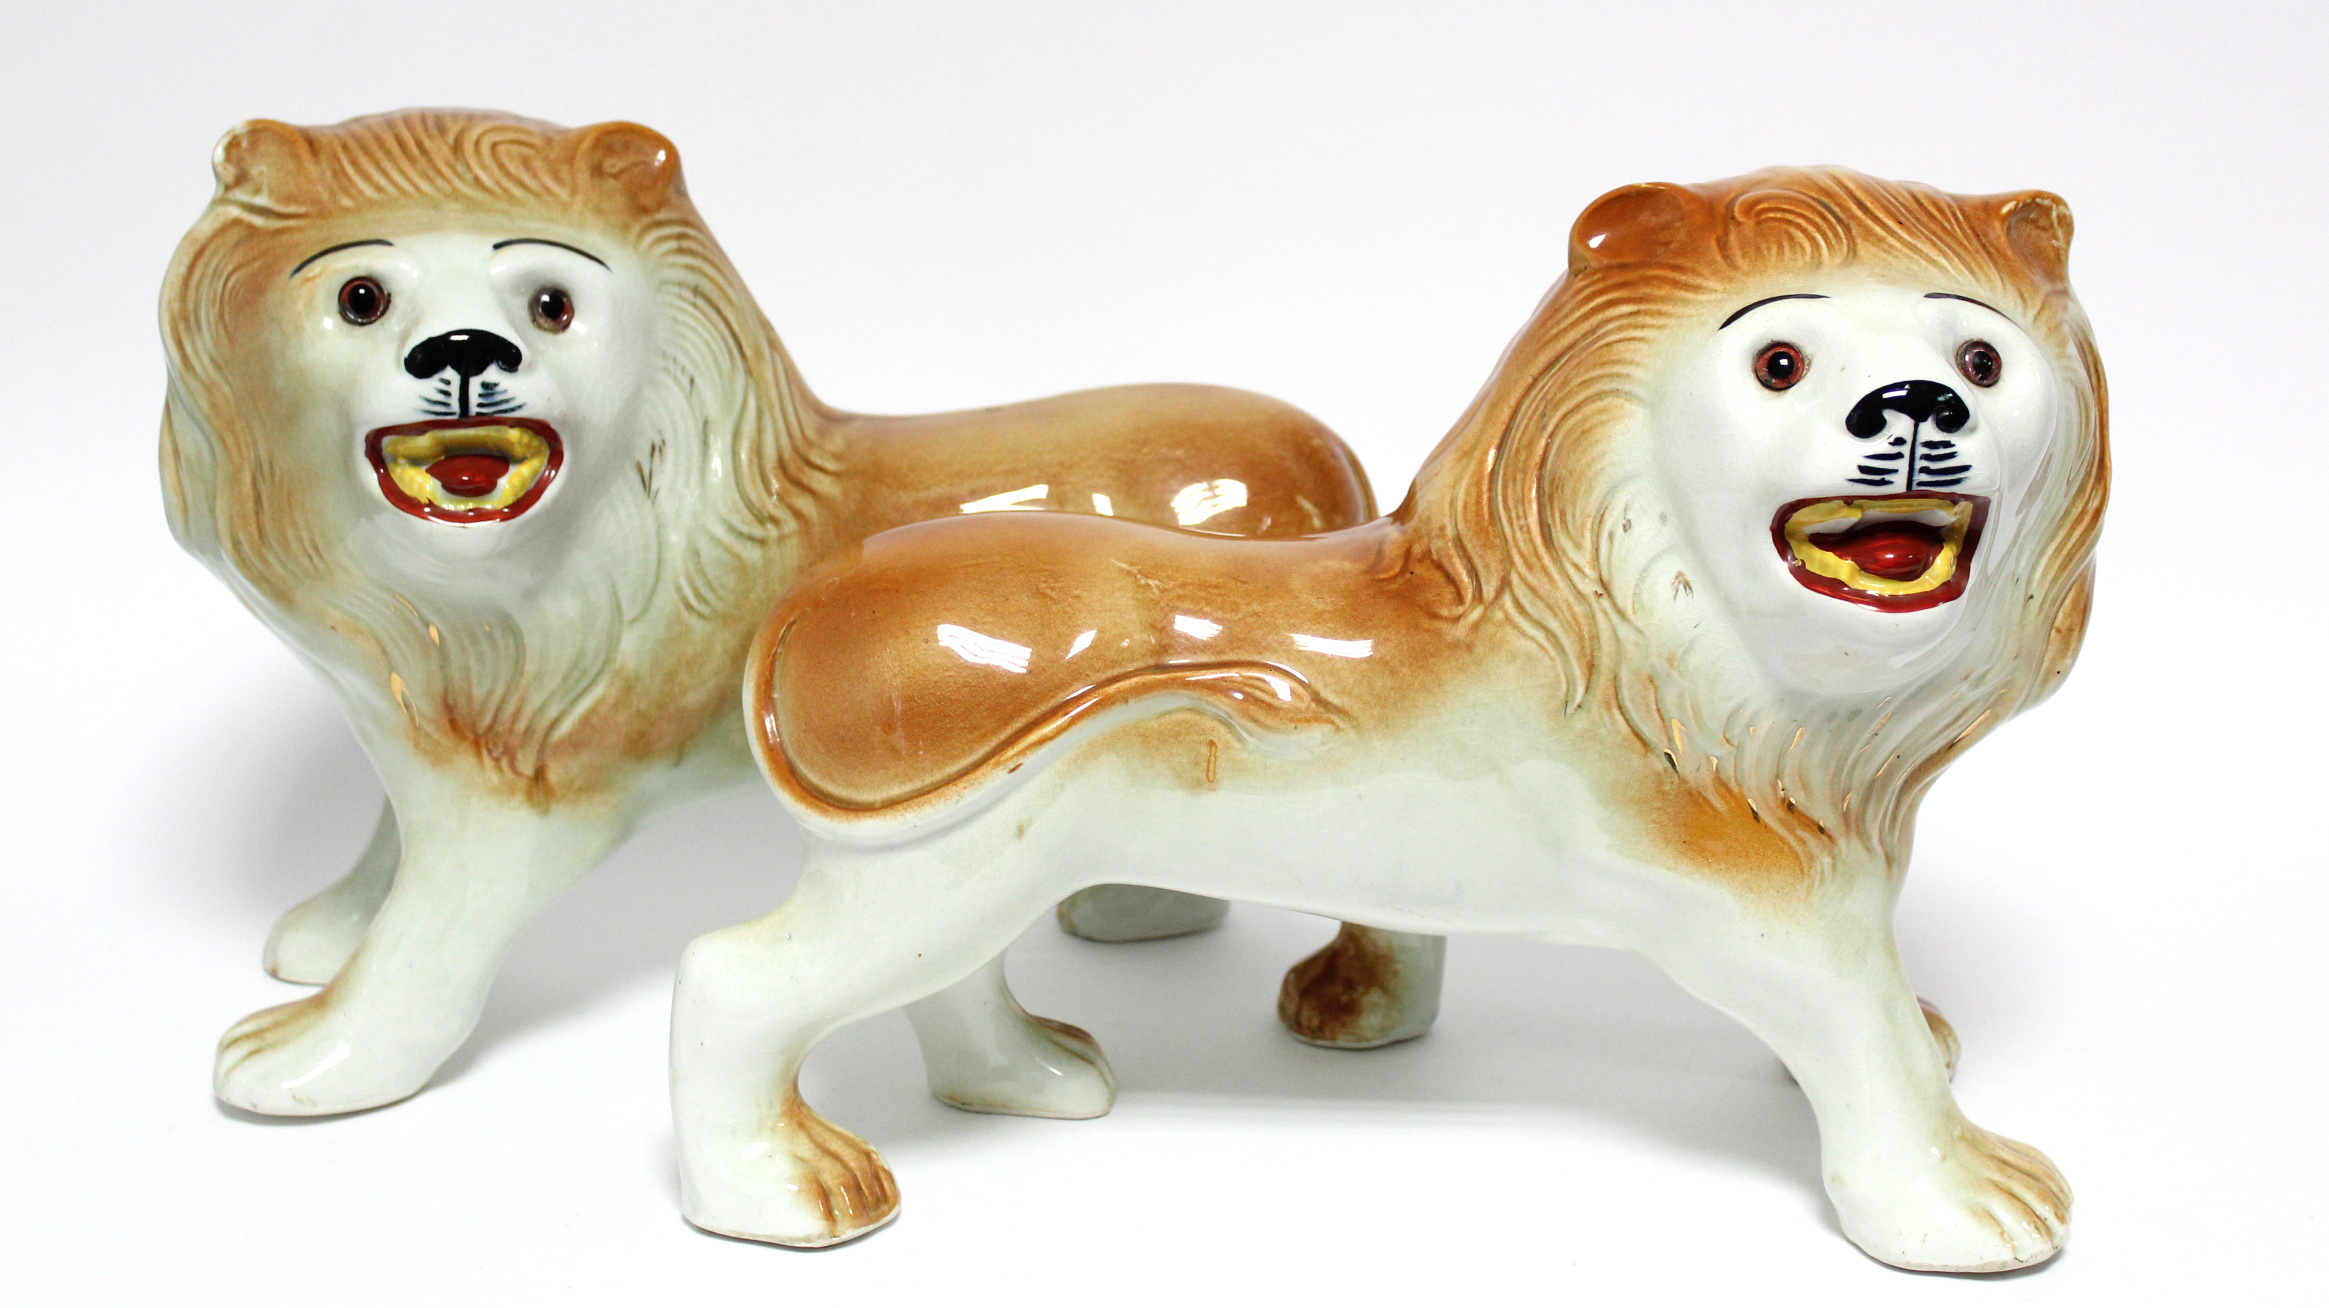 A pair of early 20th century Sadler Pottery large standing models of roaring lions with inset